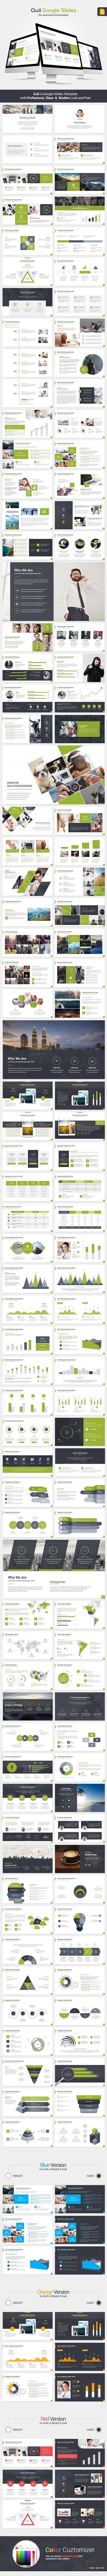 Business infographic : Business infographic : Business infographic : Quil #Google #Slides Template  Goo